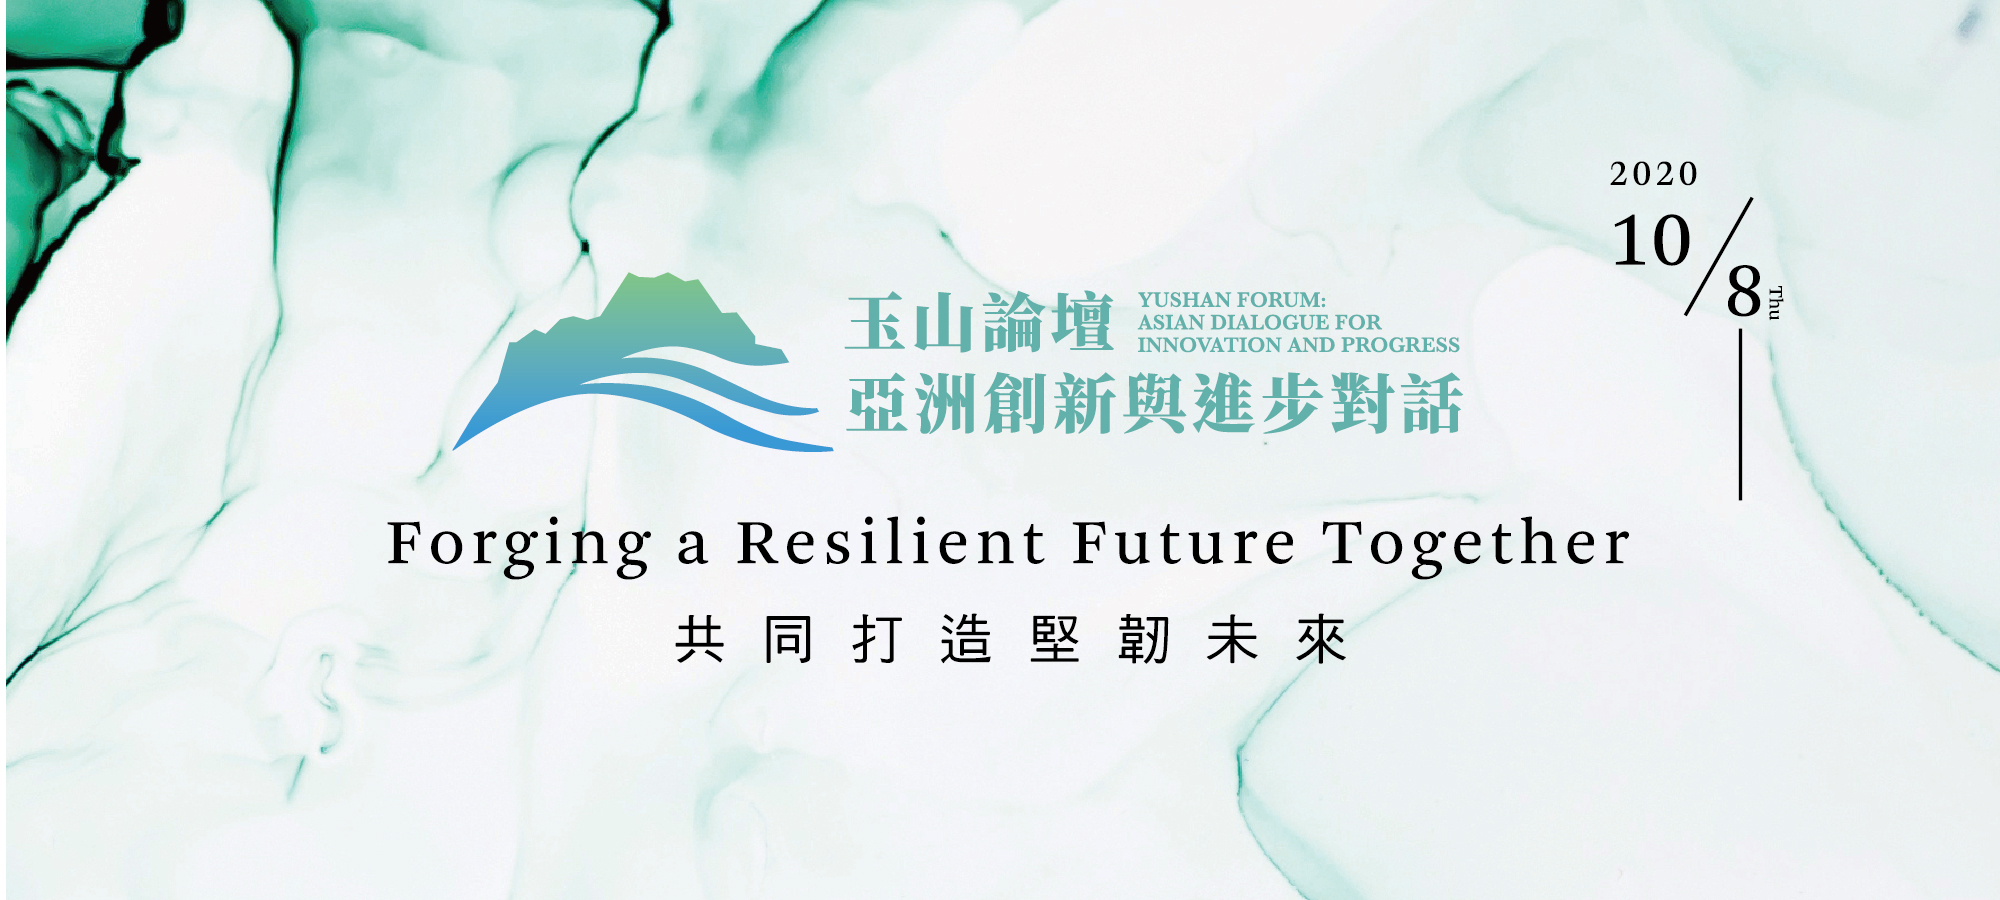 2020 Yushan Forum: Taiwan and New Southbound: Building a Resilient Future Together in the Post-Pandemic Era